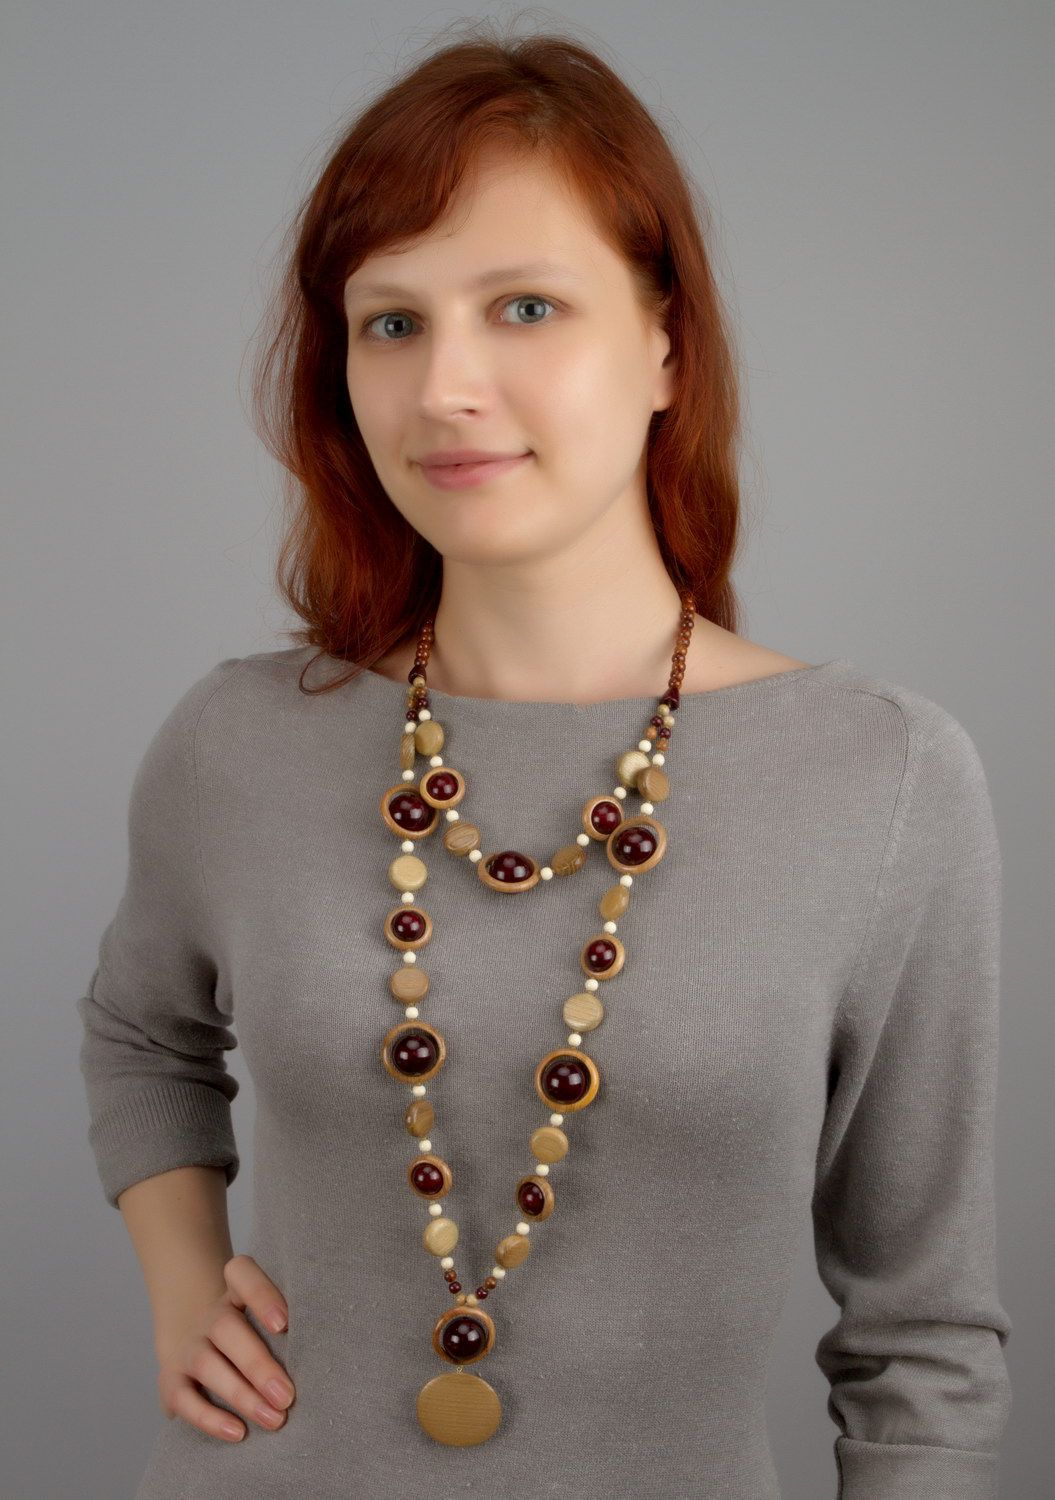 Wooden beaded necklace with clasp photo 5